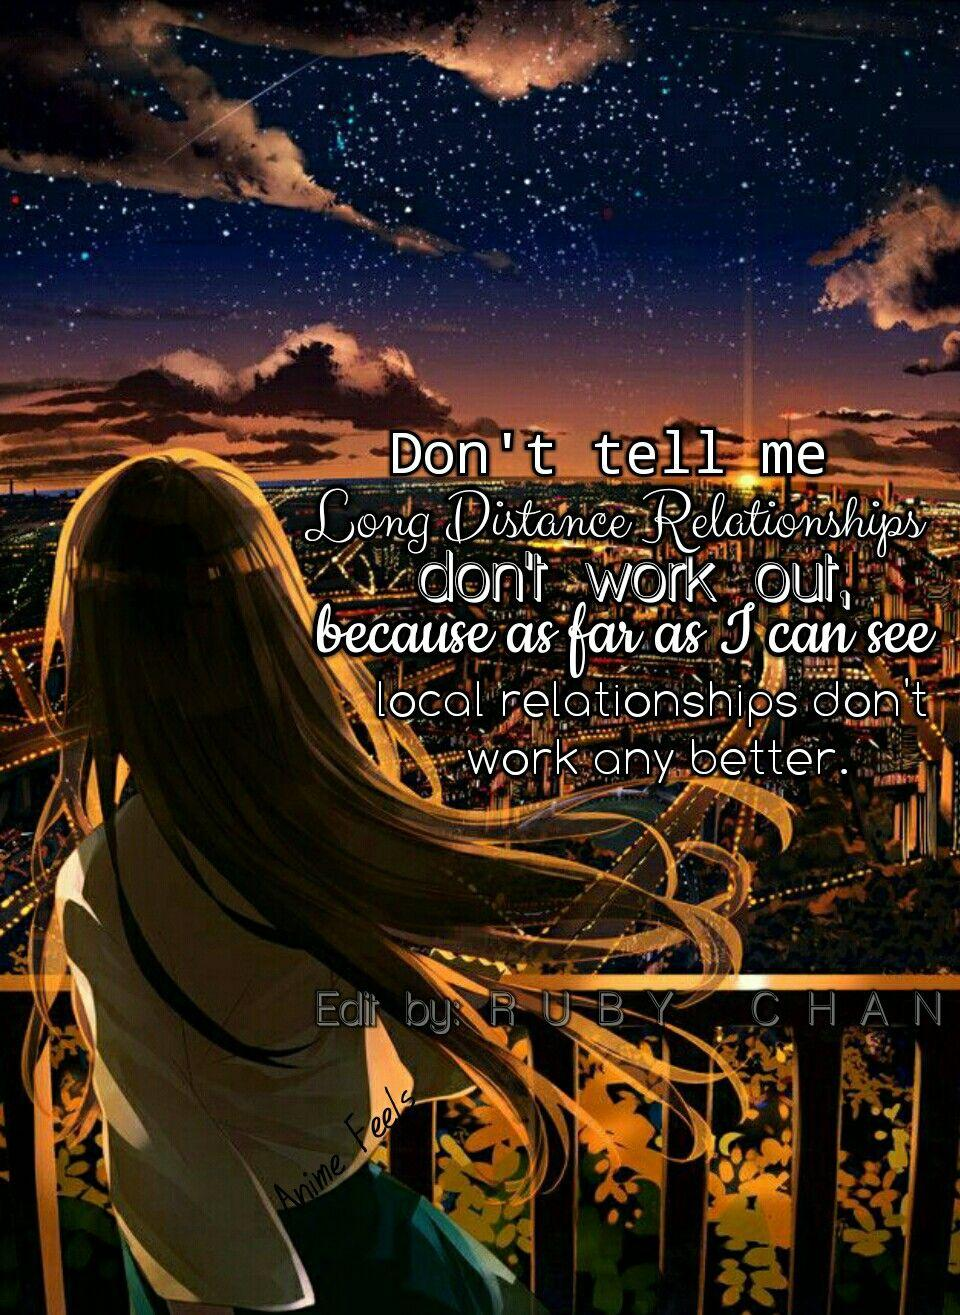 Anime Sad Love Relationship Wallpapers Wallpaper Cave